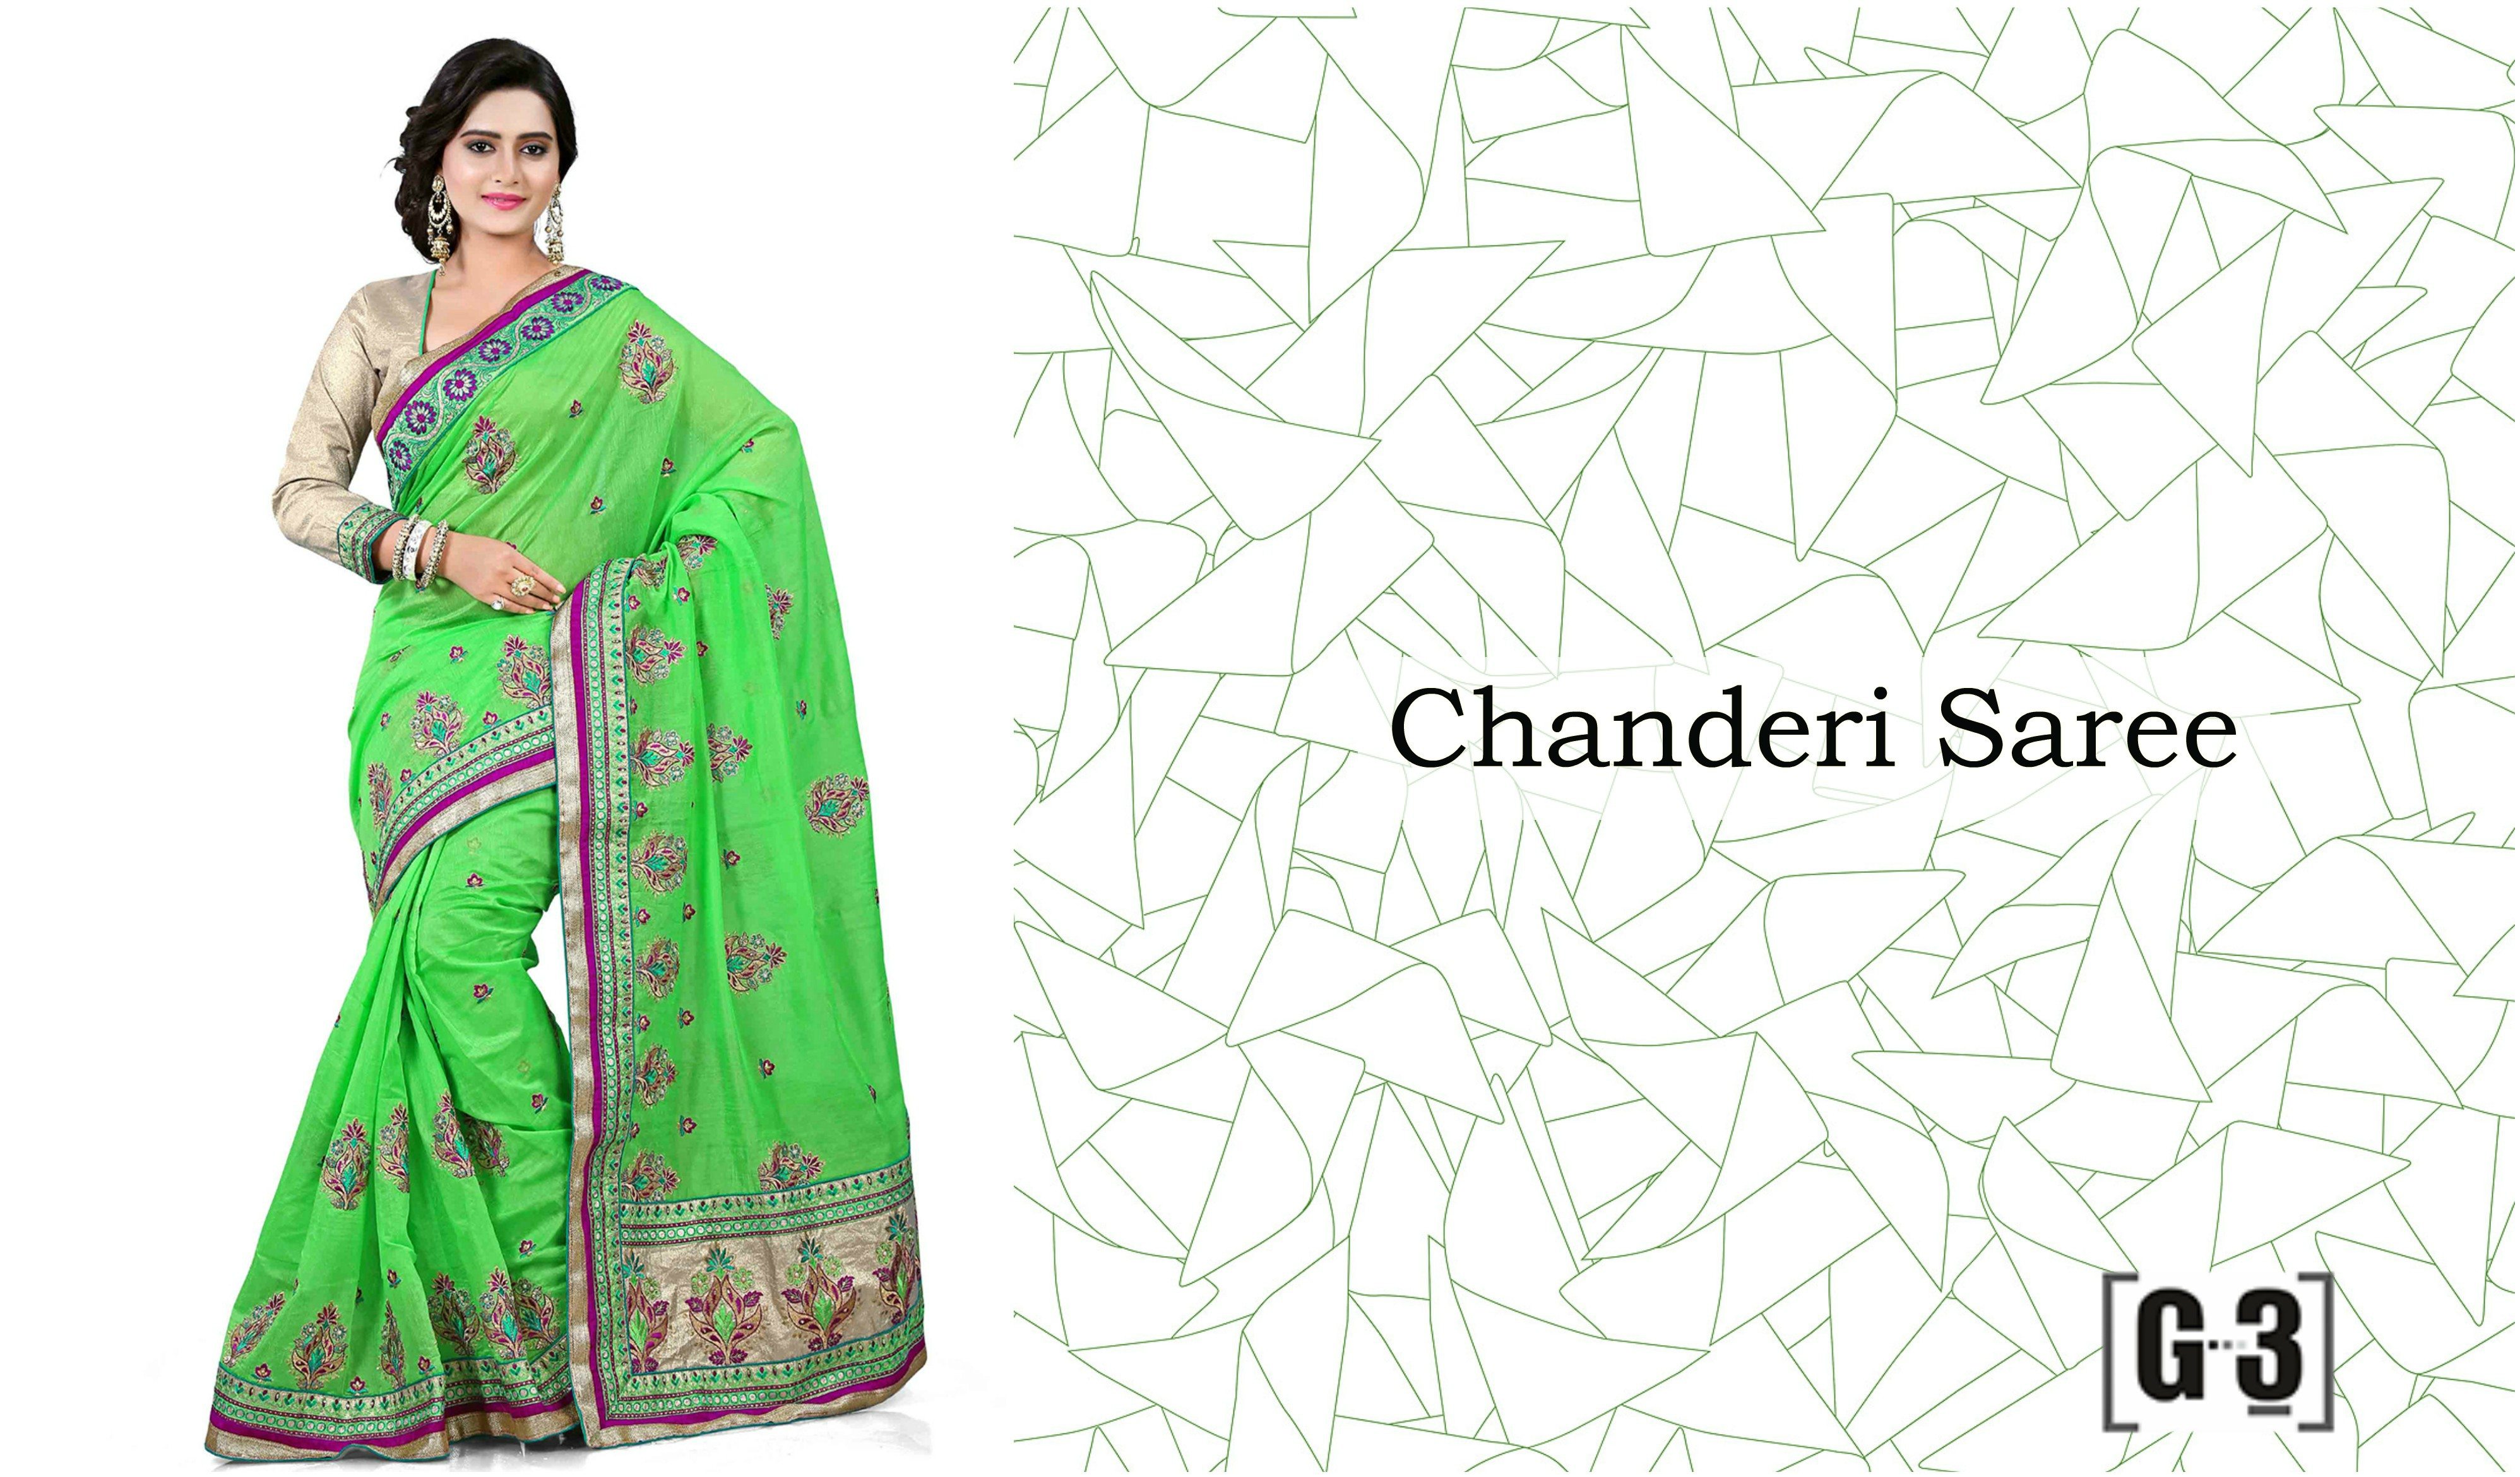 Chanderi Saree Sari Indian 15 Types Of Regional Sarees From